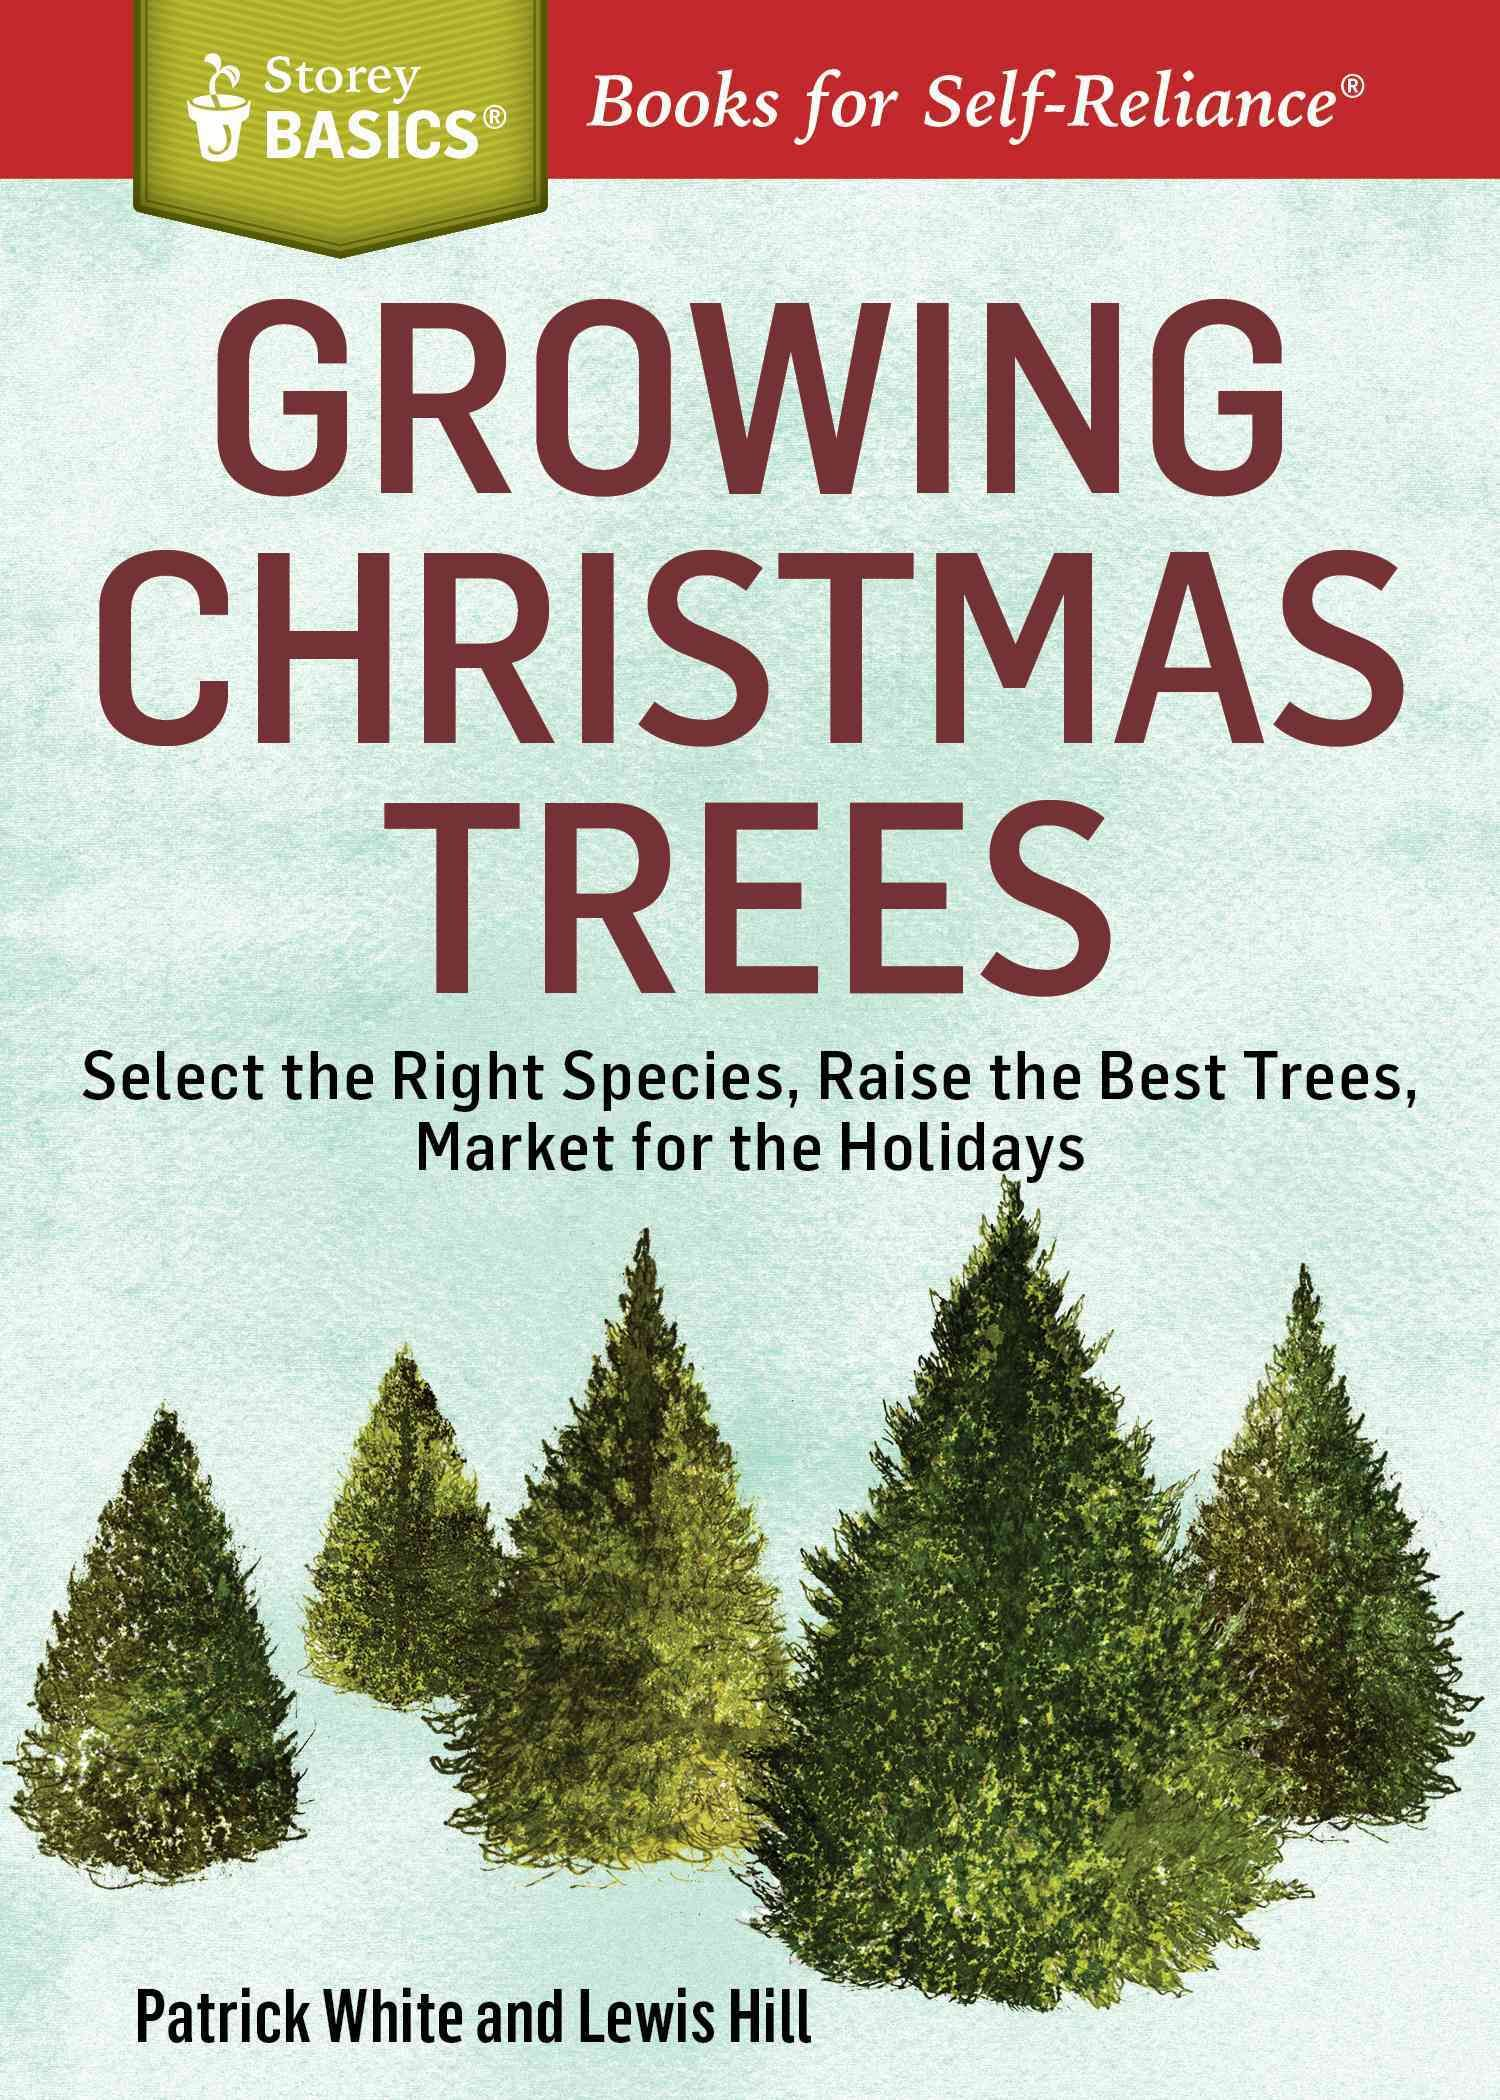 Growing Christmas trees is a great way to generate off